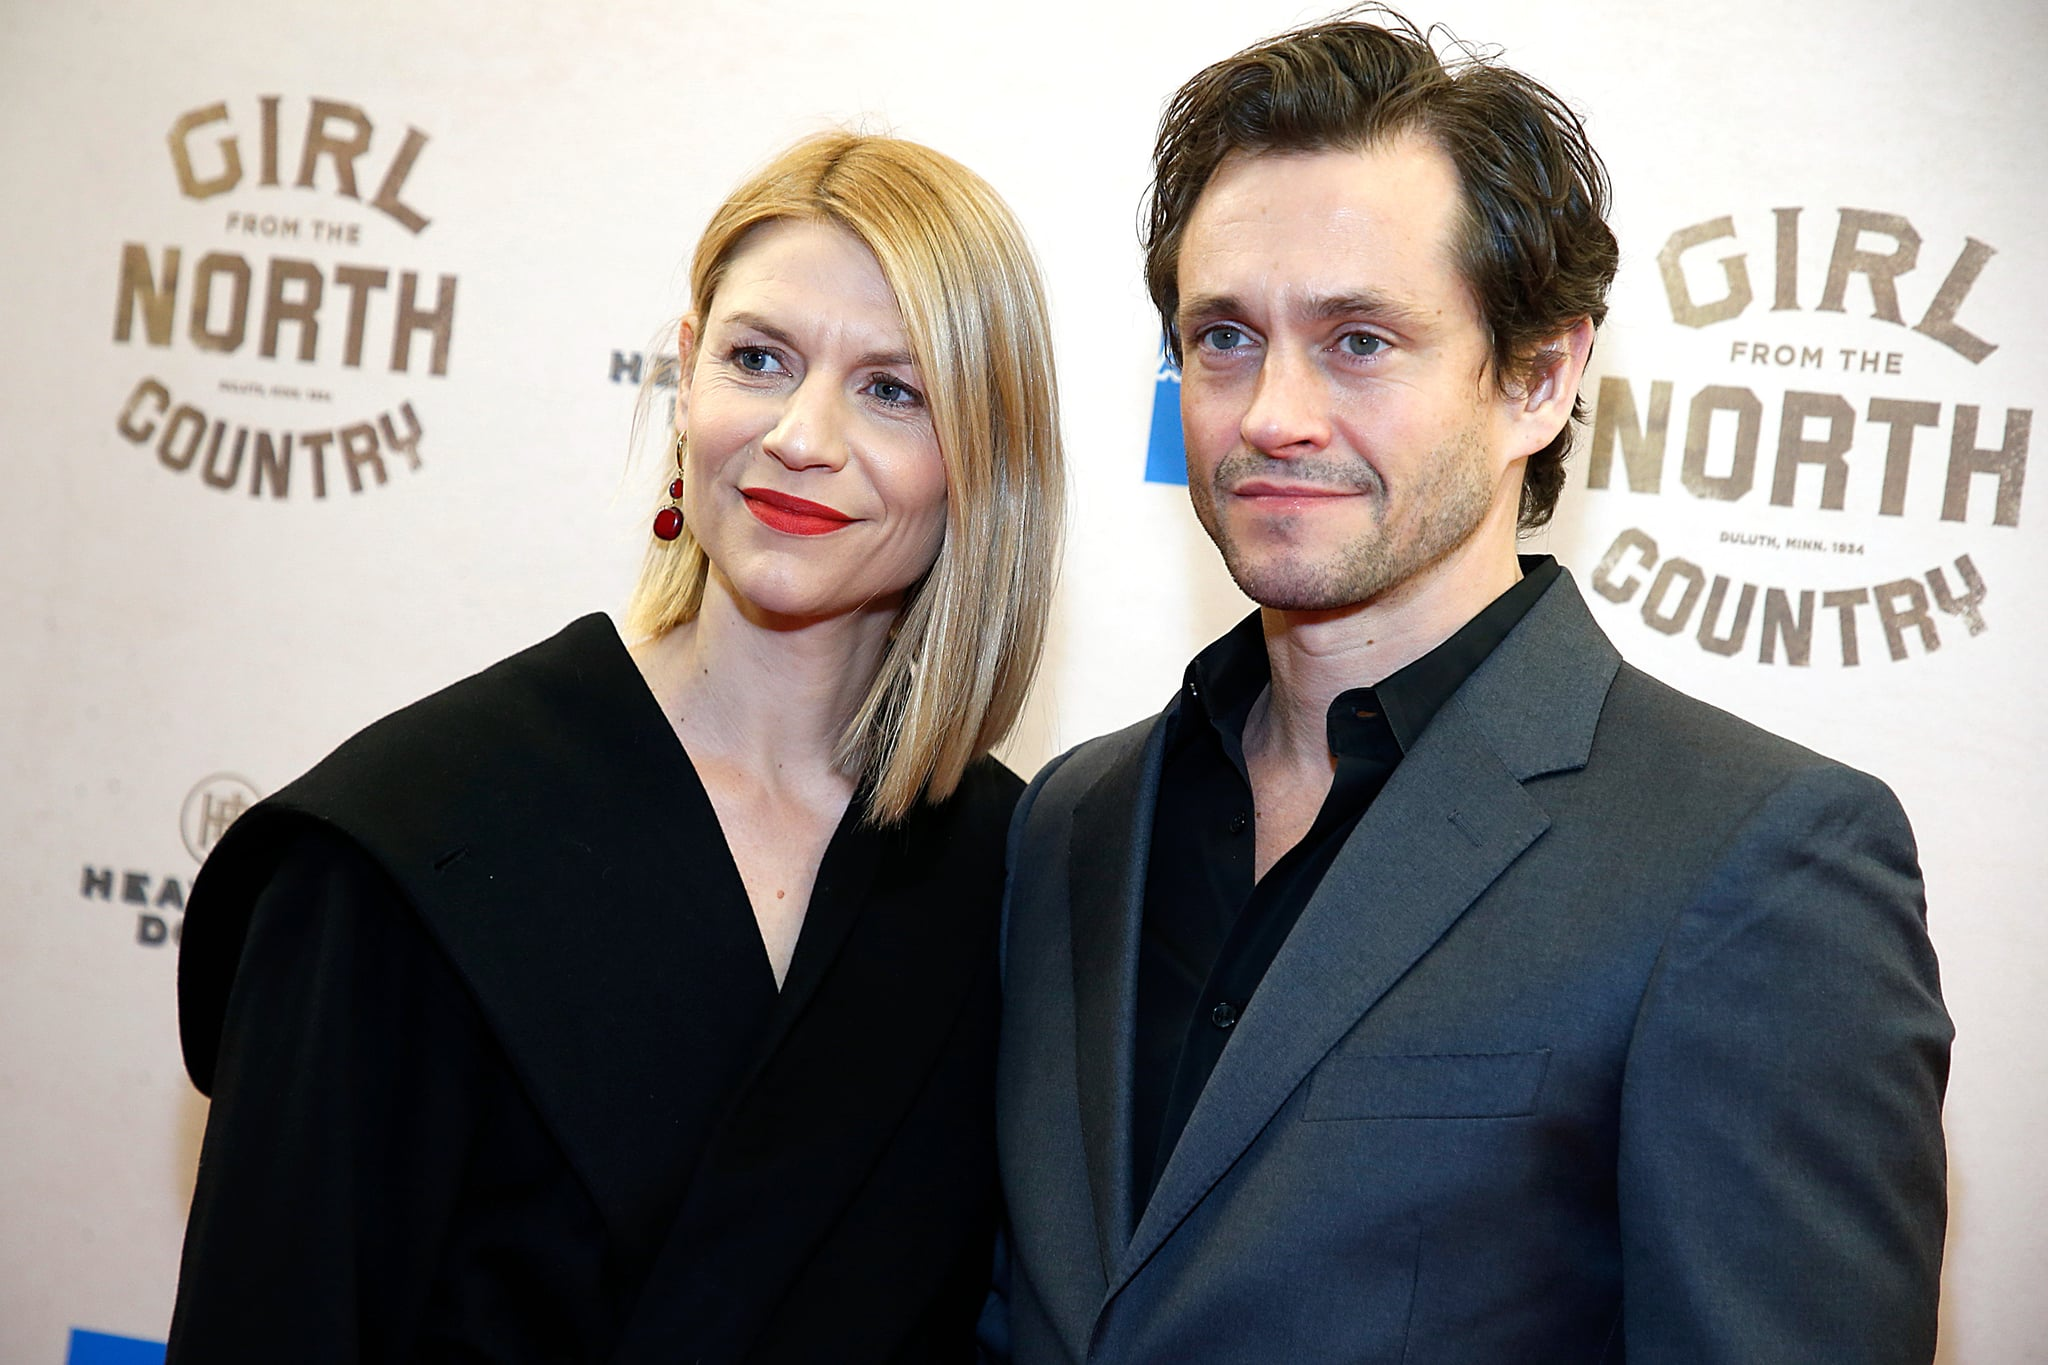 NEW YORK, NEW YORK - MARCH 05: Claire Danes and Hugh Dancy attend